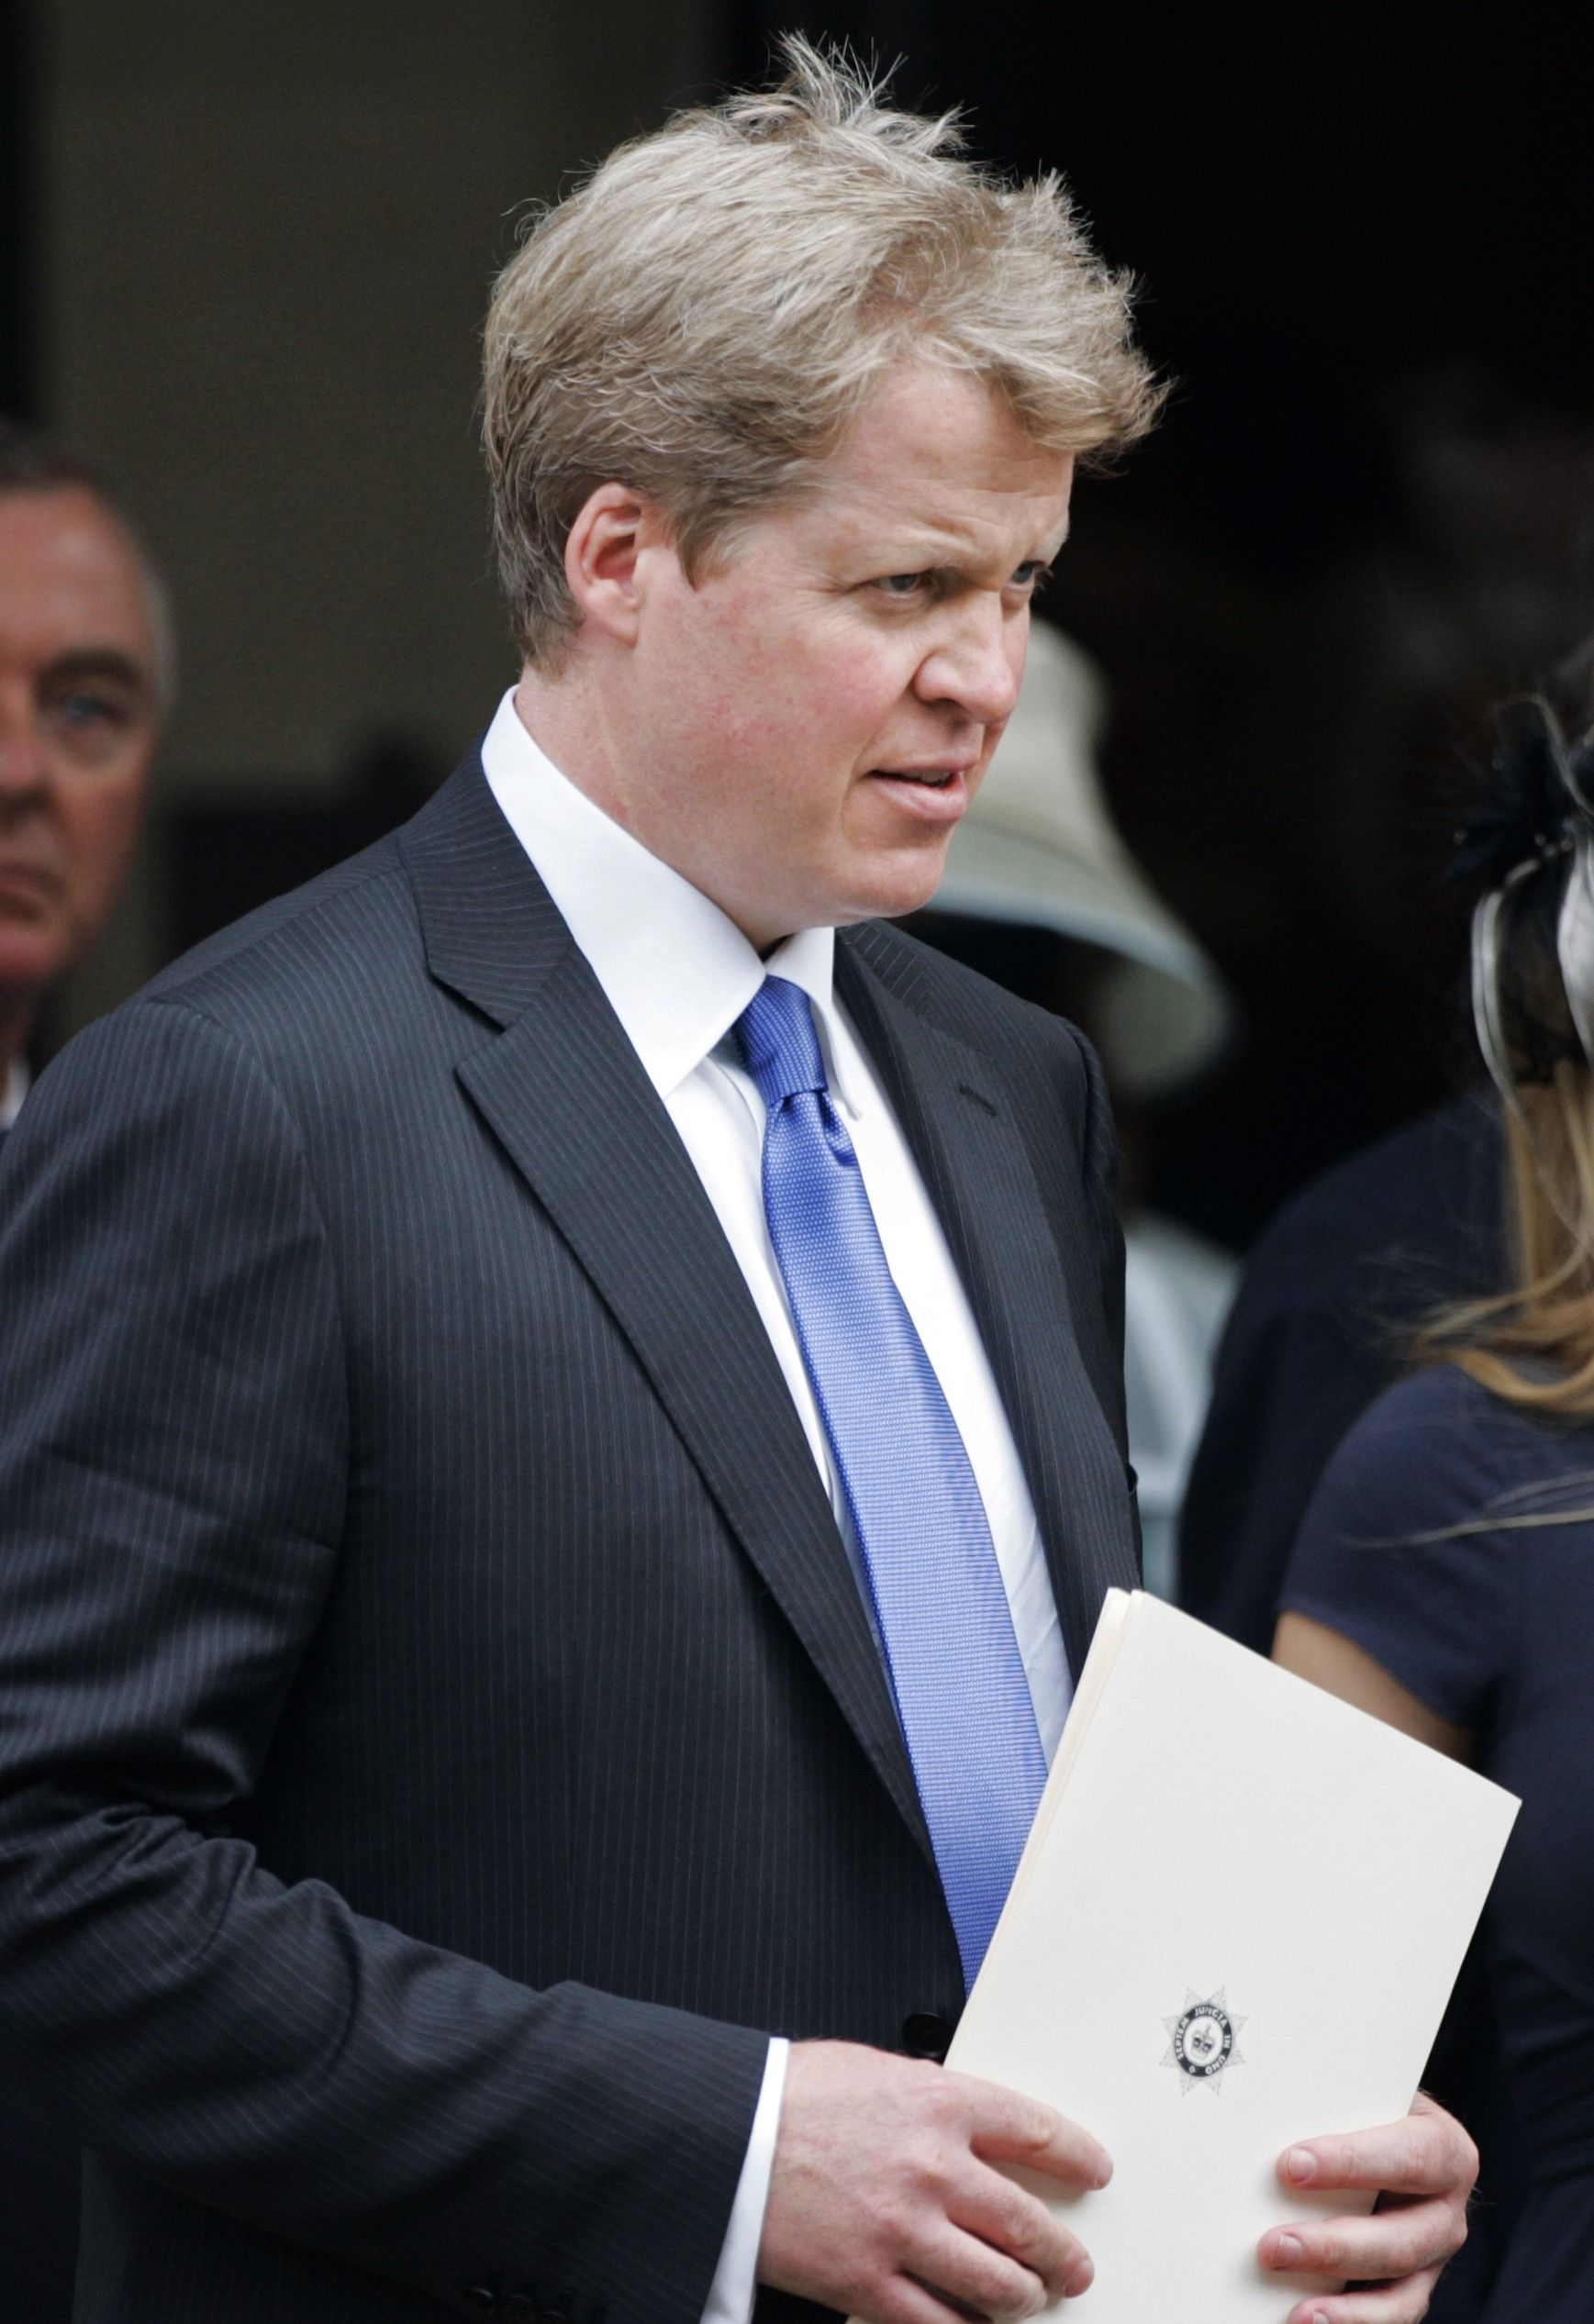 Diana's brother Charles, Earl Spencer at the 10th Anniversary Memorial Service For Diana, Princess of Wales at Guards Chapel at Wellington Barracks on August 31, 2007   Photo: Getty Images